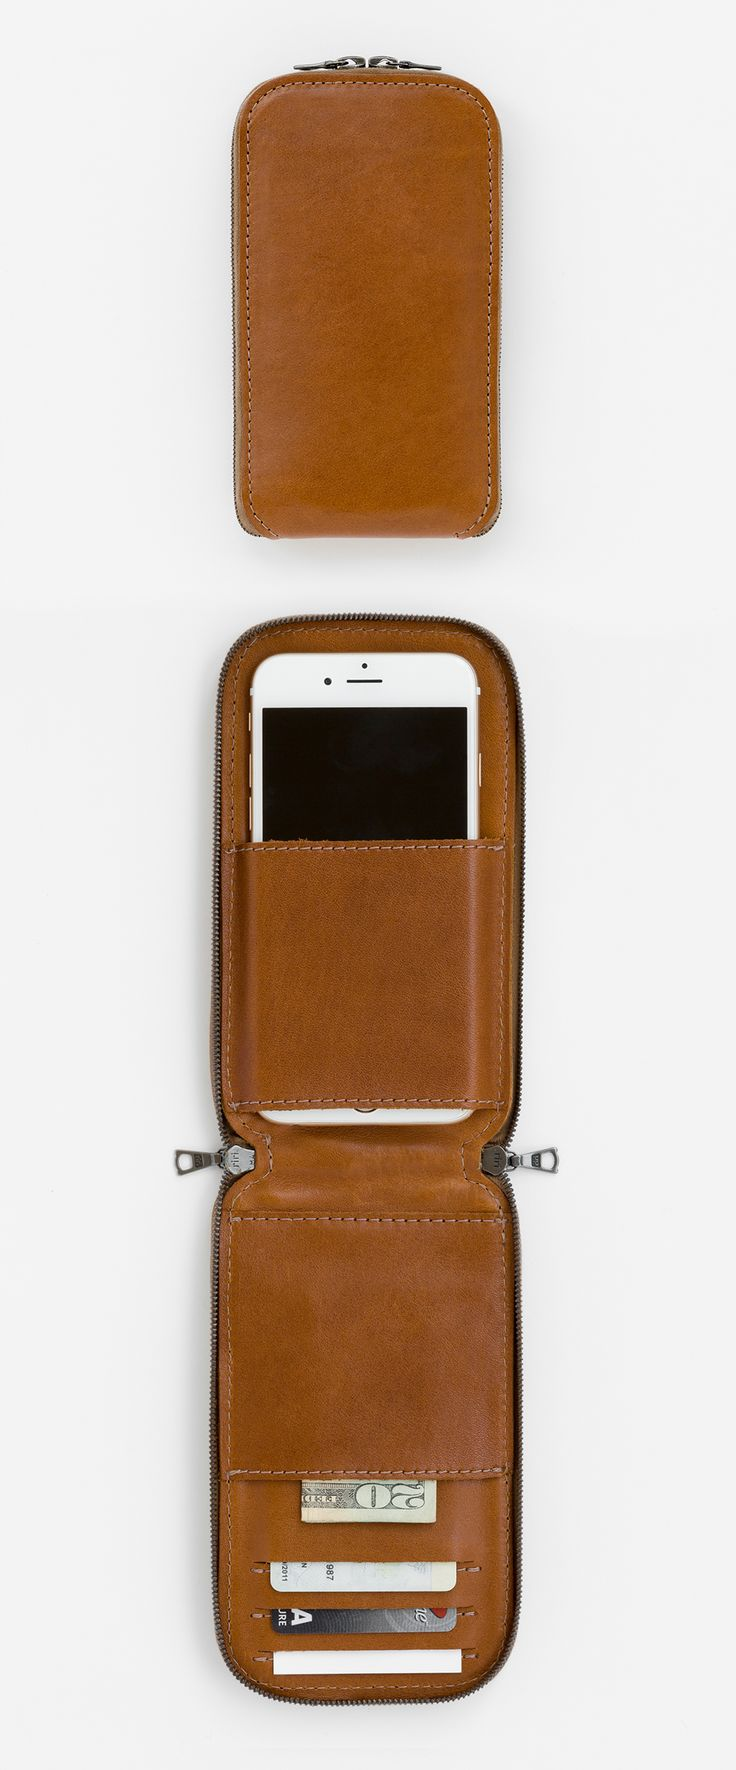 Stash, phone-wallet. Mod 2 will be available for preorder on April 3 and ships on April 17. Want one of these beauties so much! @thisisground #tigmod